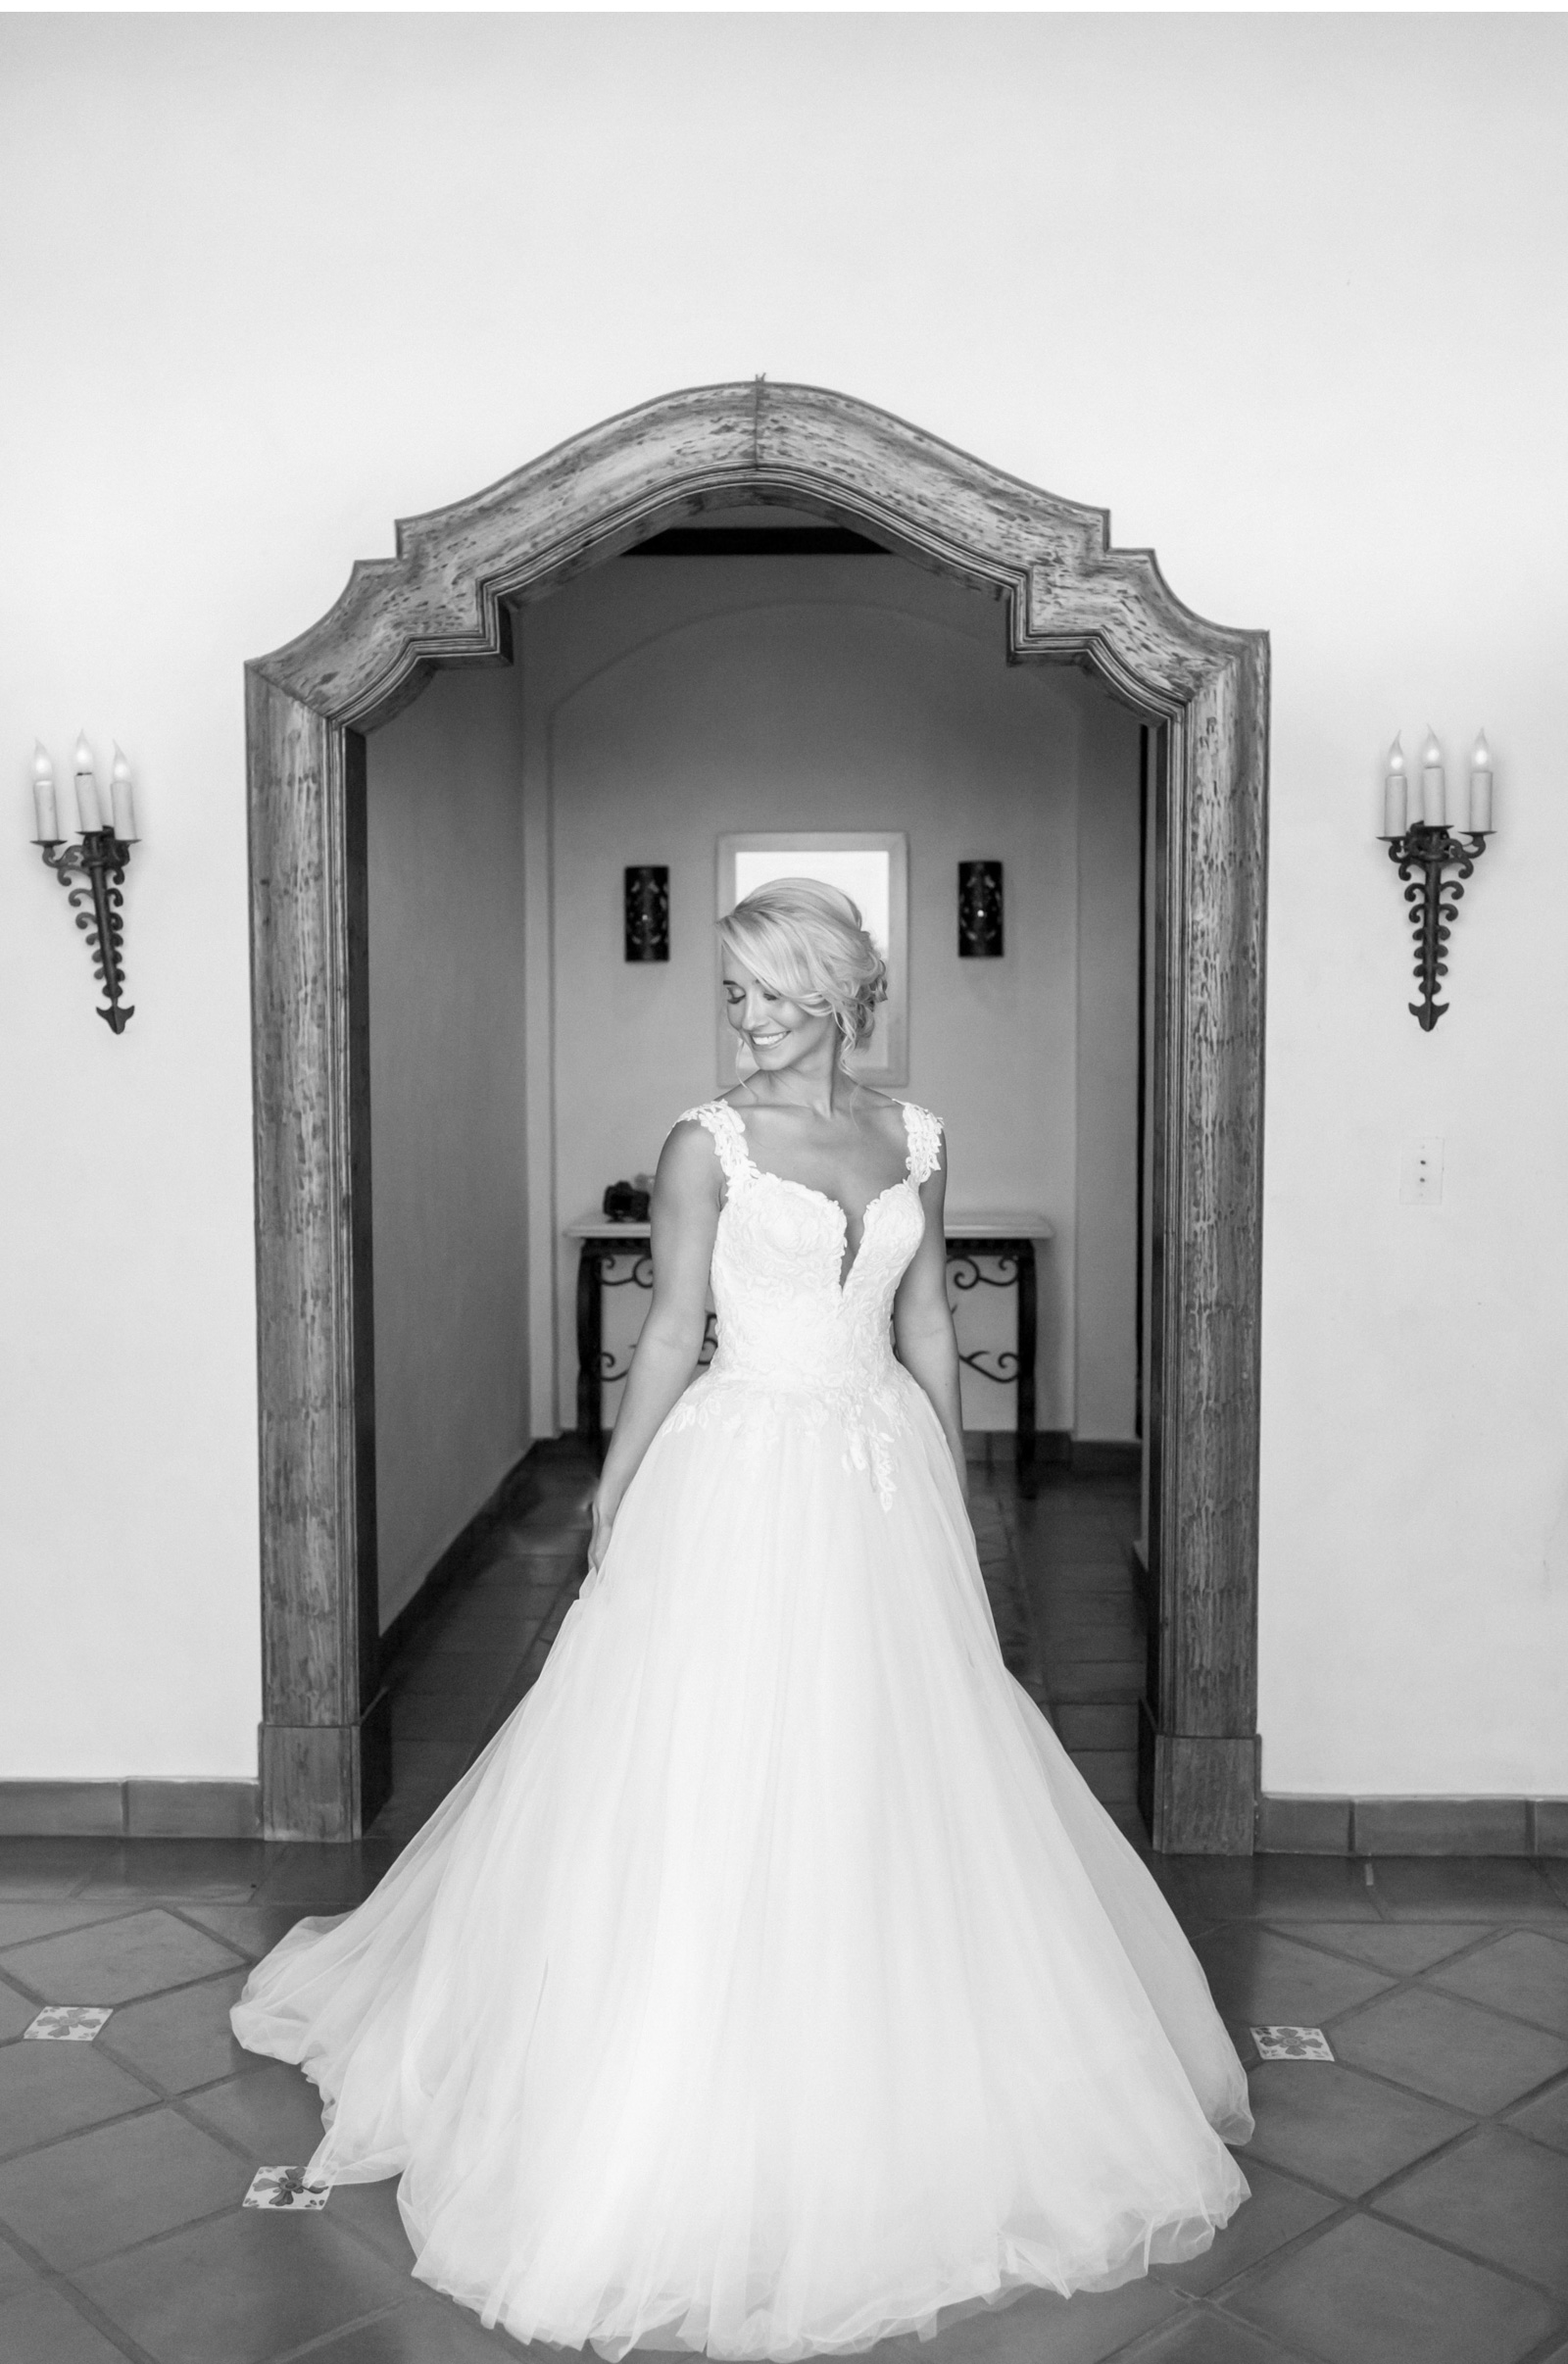 Cabo-Del-Sol-Wedding-Natalie-Schutt-Photography-Inspired-By-This_04.jpg